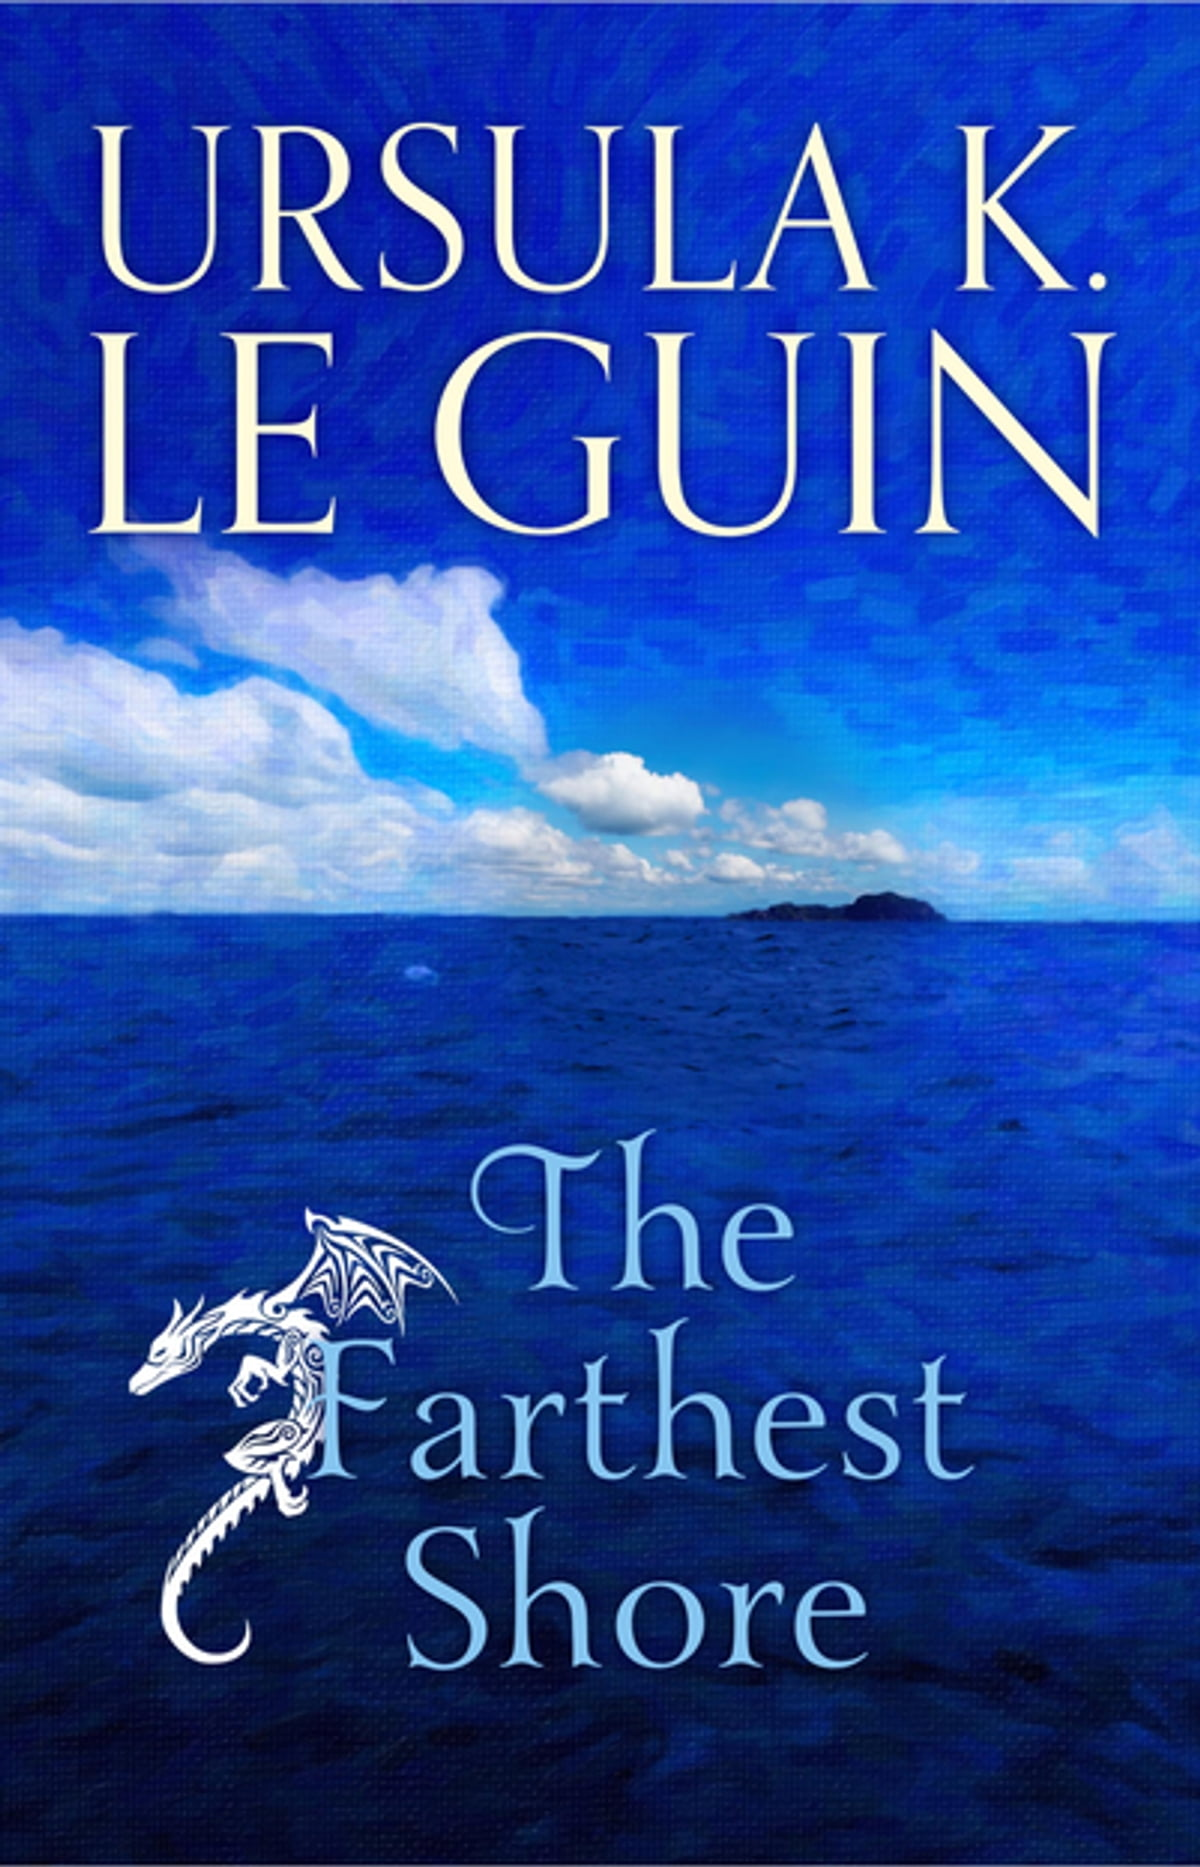 the matter of seggri by ursula le guin essay Aloha for the close reading i chose the matter of seggri she starts off by saying that it's a miserable life, which makes the reader feel rather bad for the men- but it's really only miserable from the narrator's point of view.